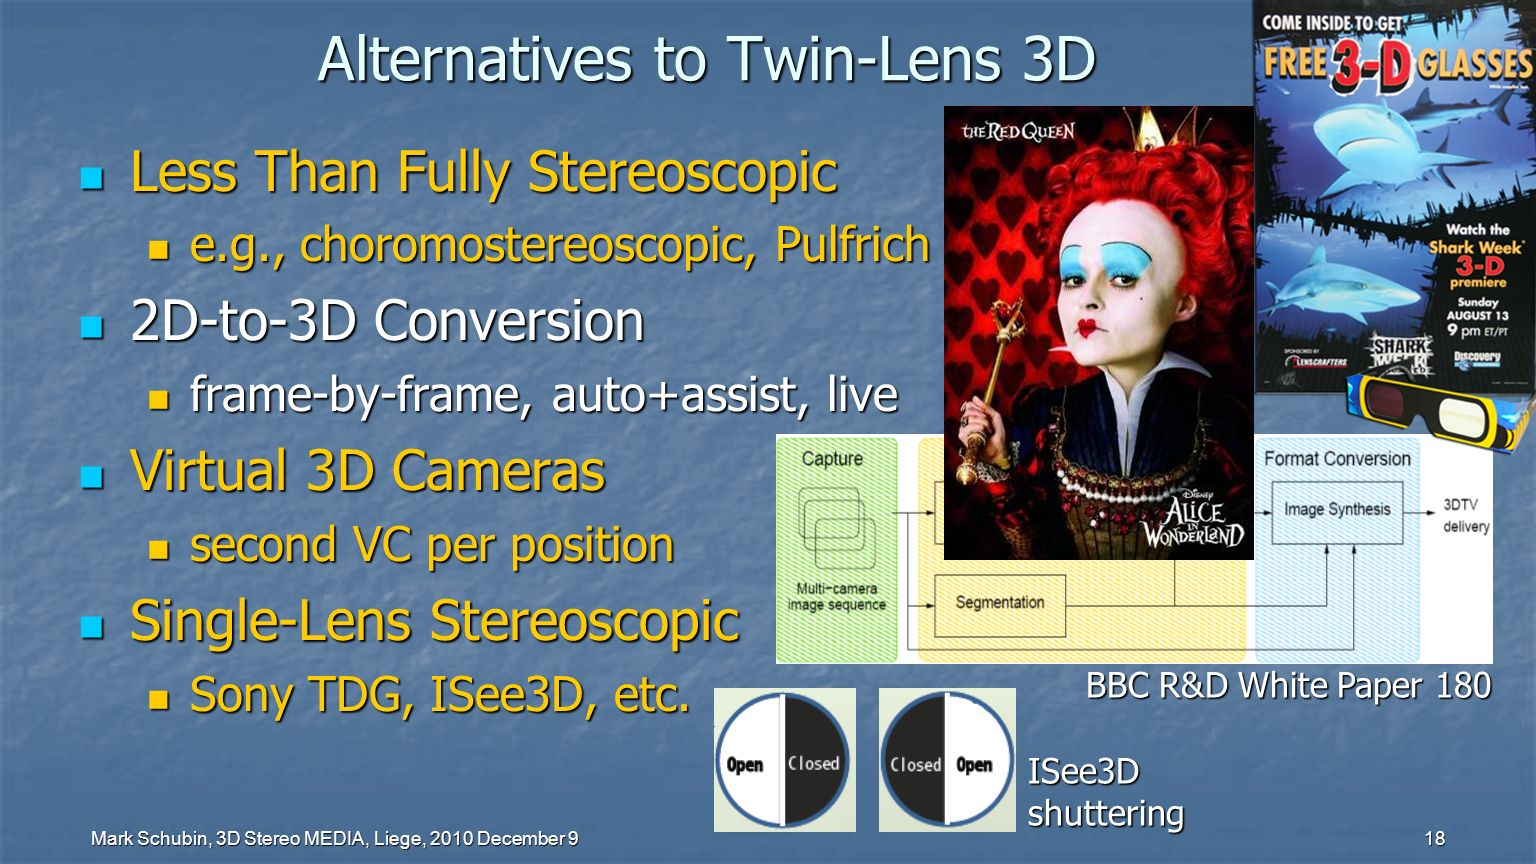 Mark Schubin, 3D Stereo MEDIA, Liege, 2010 December 9 18 Alternatives to Twin-Lens 3D Less Than Fully Stereoscopic Less Than Fully Stereoscopic e.g., choromostereoscopic, Pulfrich e.g., choromostereoscopic, Pulfrich 2D-to-3D Conversion 2D-to-3D Conversion frame-by-frame, auto+assist, live frame-by-frame, auto+assist, live Virtual 3D Cameras Virtual 3D Cameras second VC per position second VC per position Single-Lens Stereoscopic Single-Lens Stereoscopic Sony TDG, ISee3D, etc.